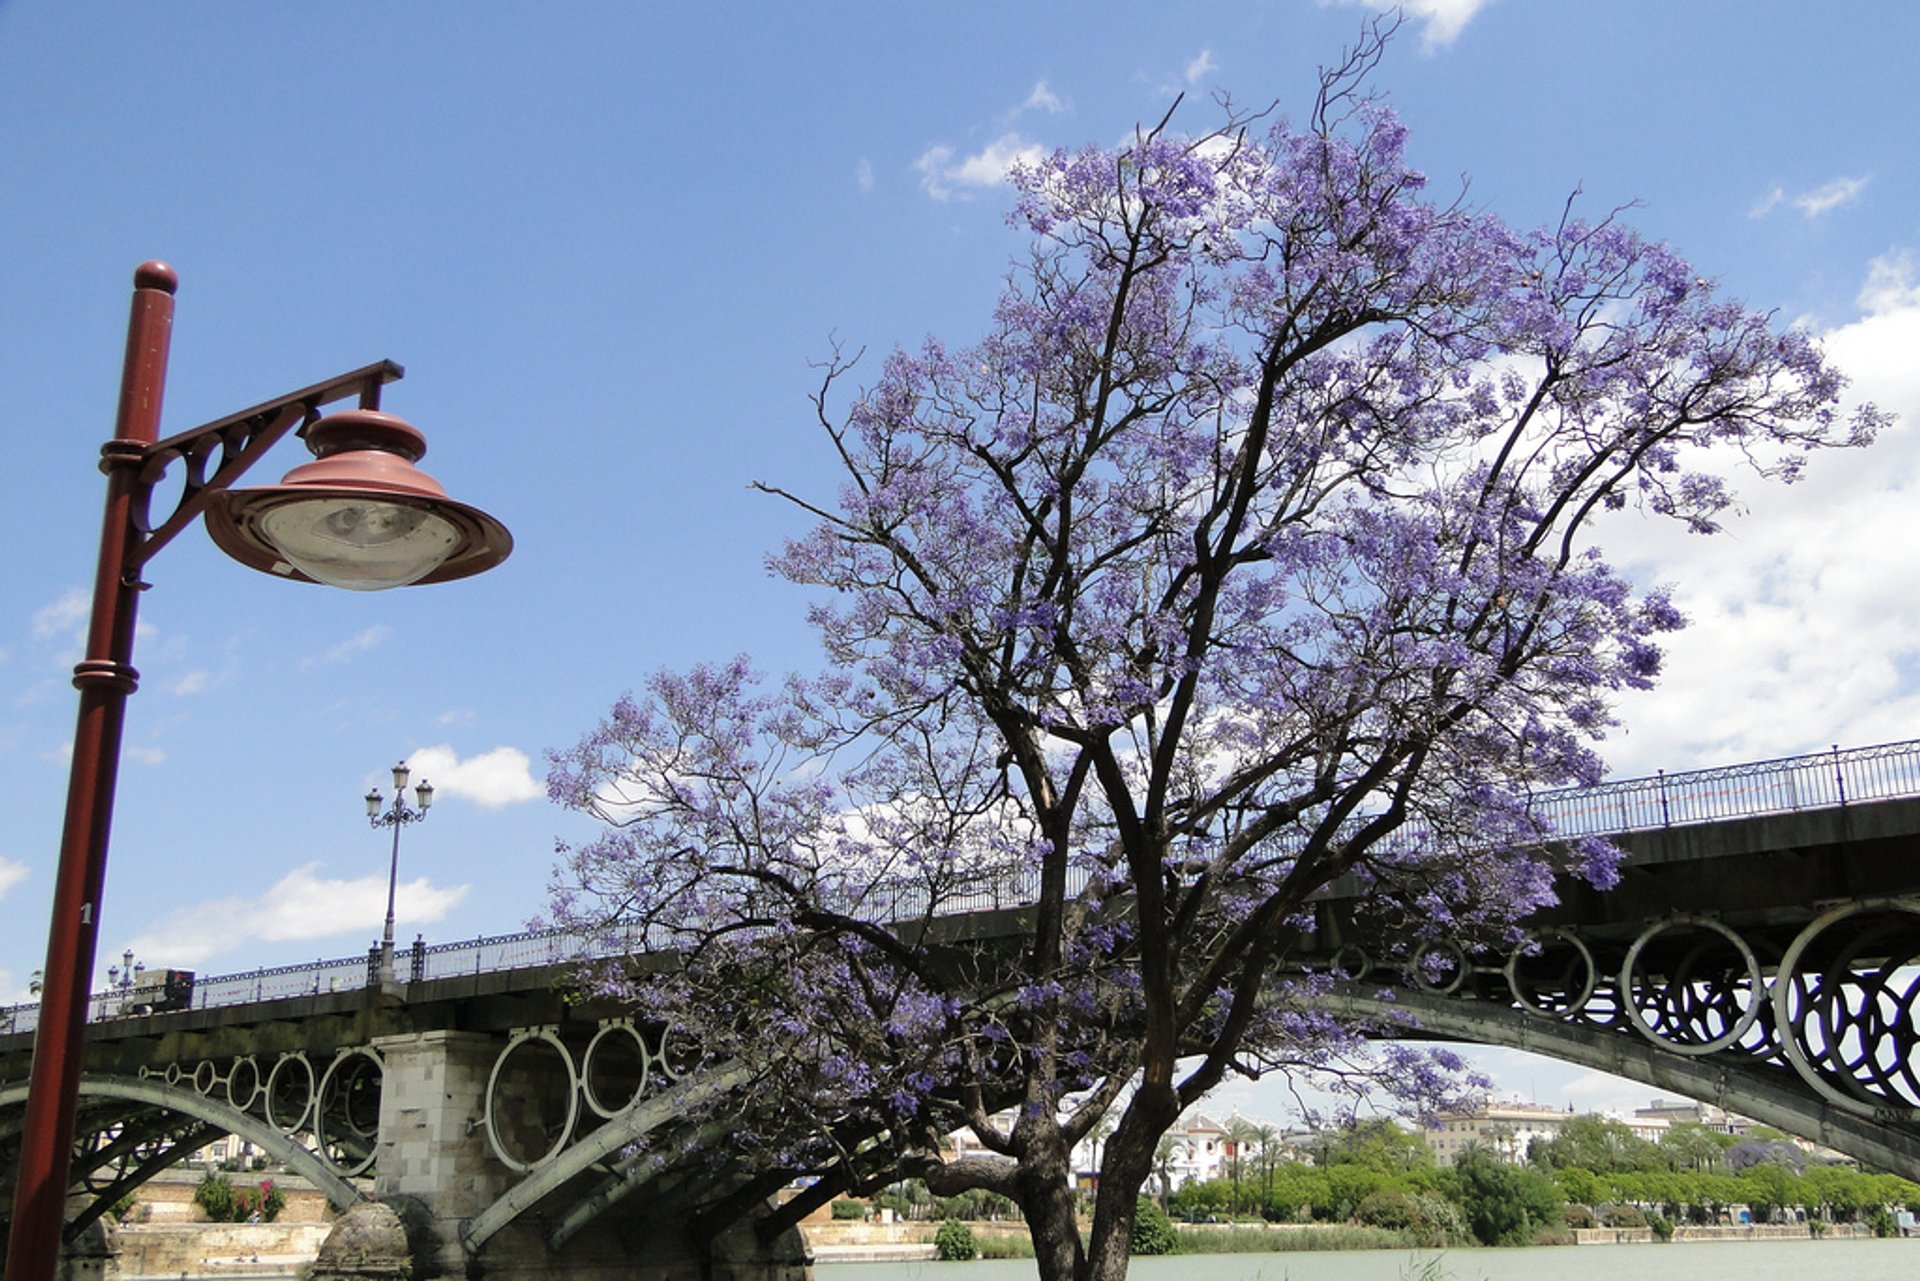 Bridge with jacaranda tree in bloom in Seville, Spain 2020